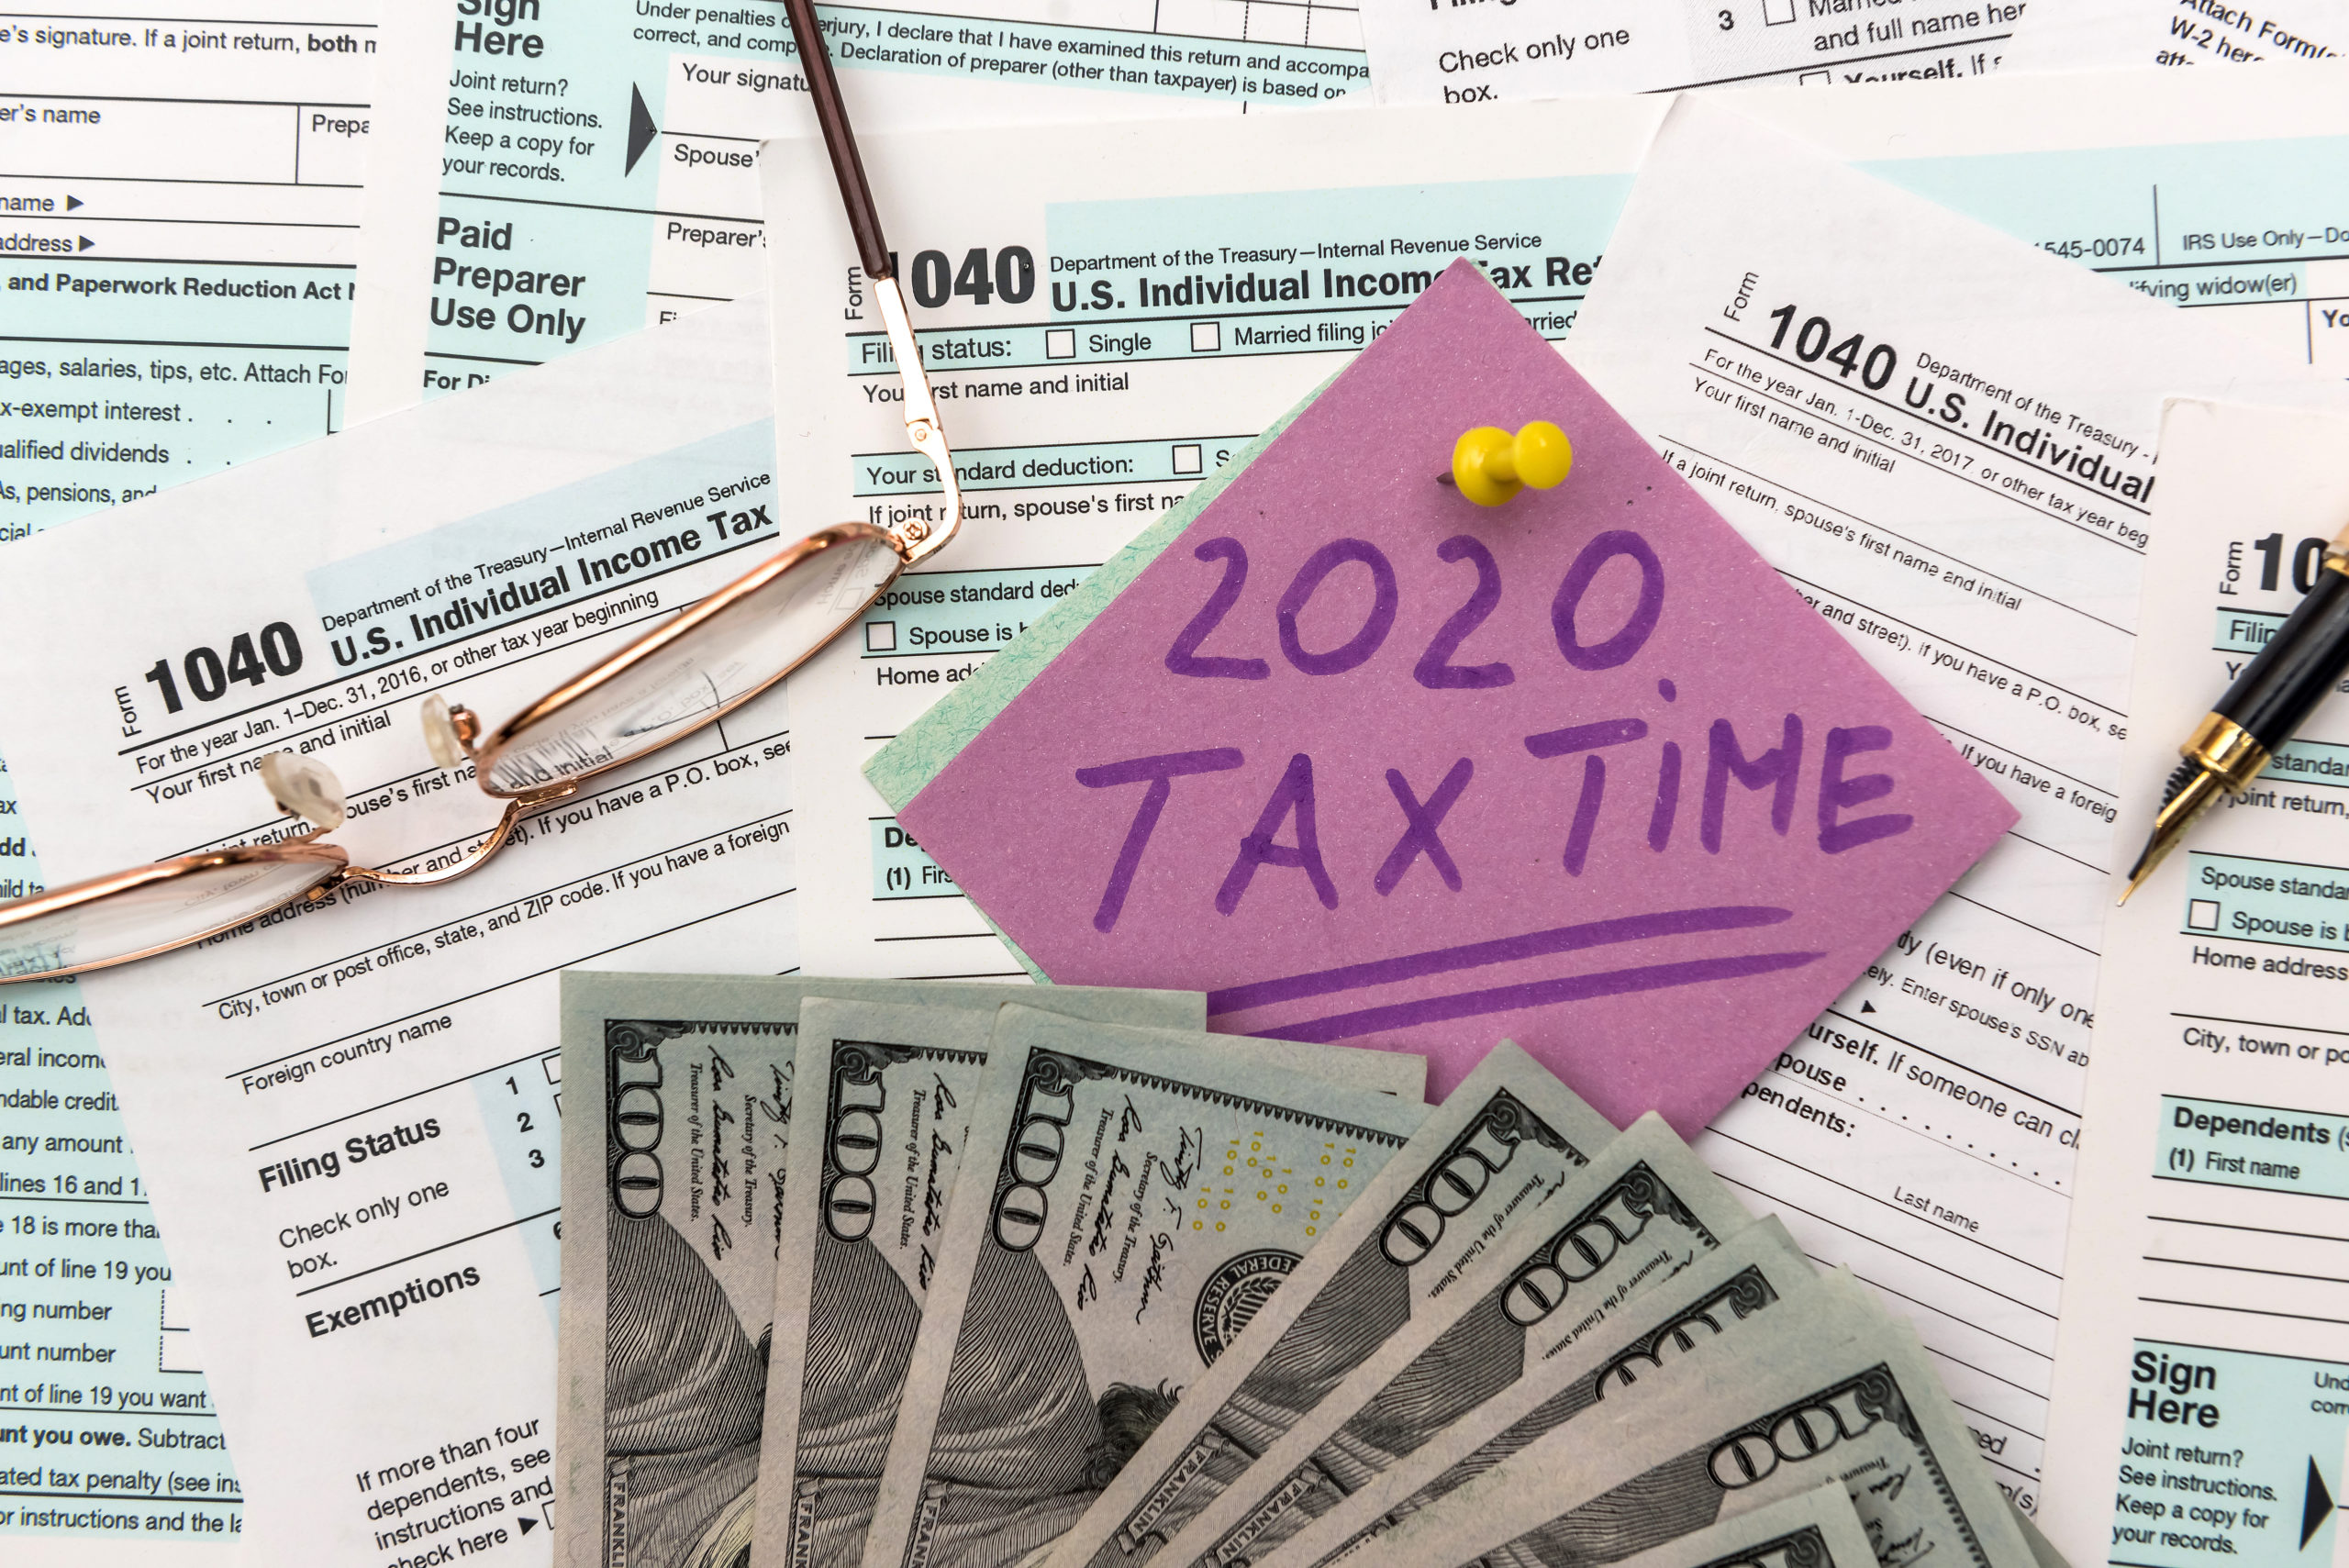 2020 Internal Revenue Service IRS 1040 1040EZ Forms Geothermal Tax Credit